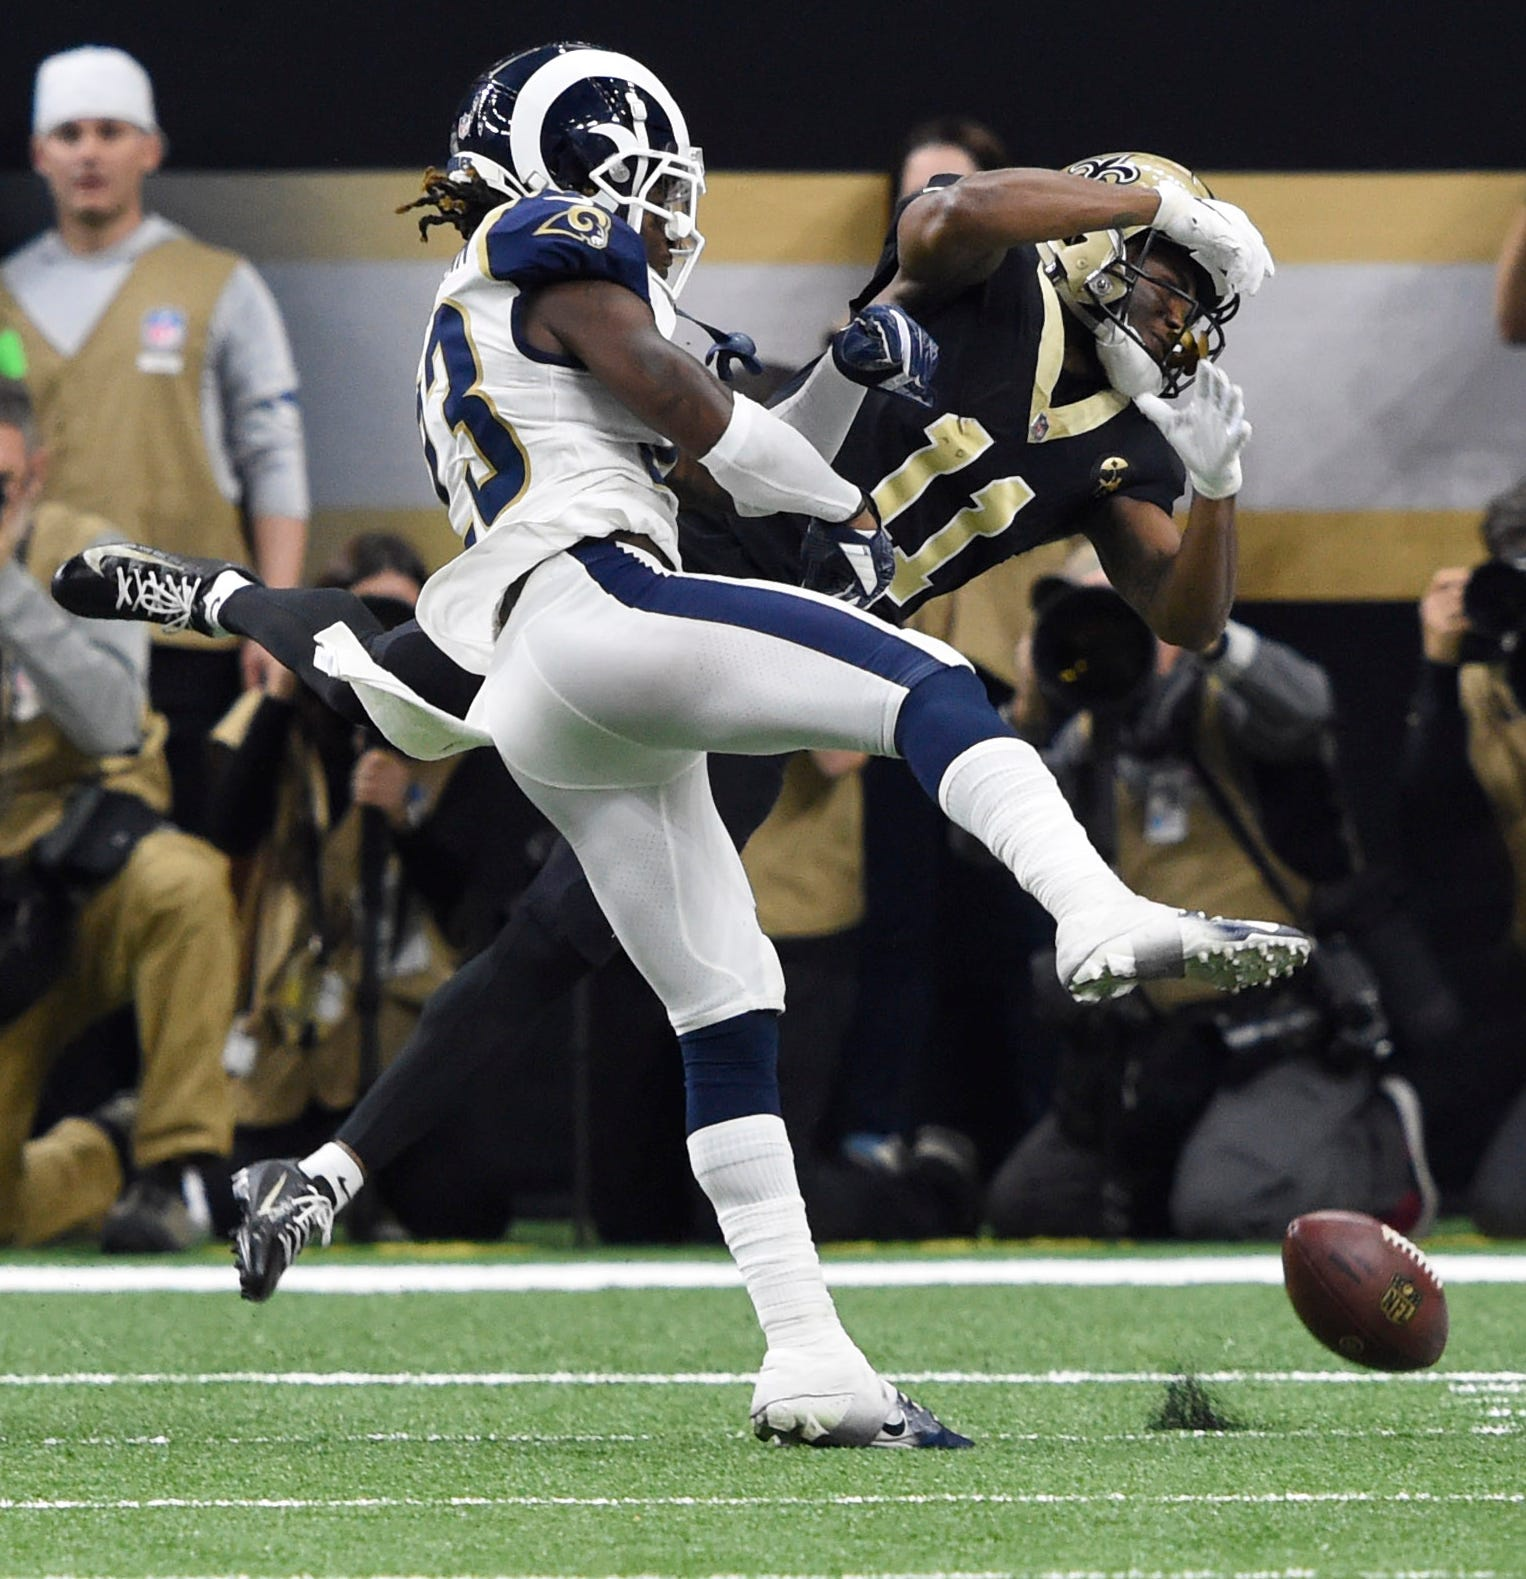 Nickell Robey-Coleman's hit on Tommylee Lewis in the NFC Championship has brought plenty of controversy to the NFL.